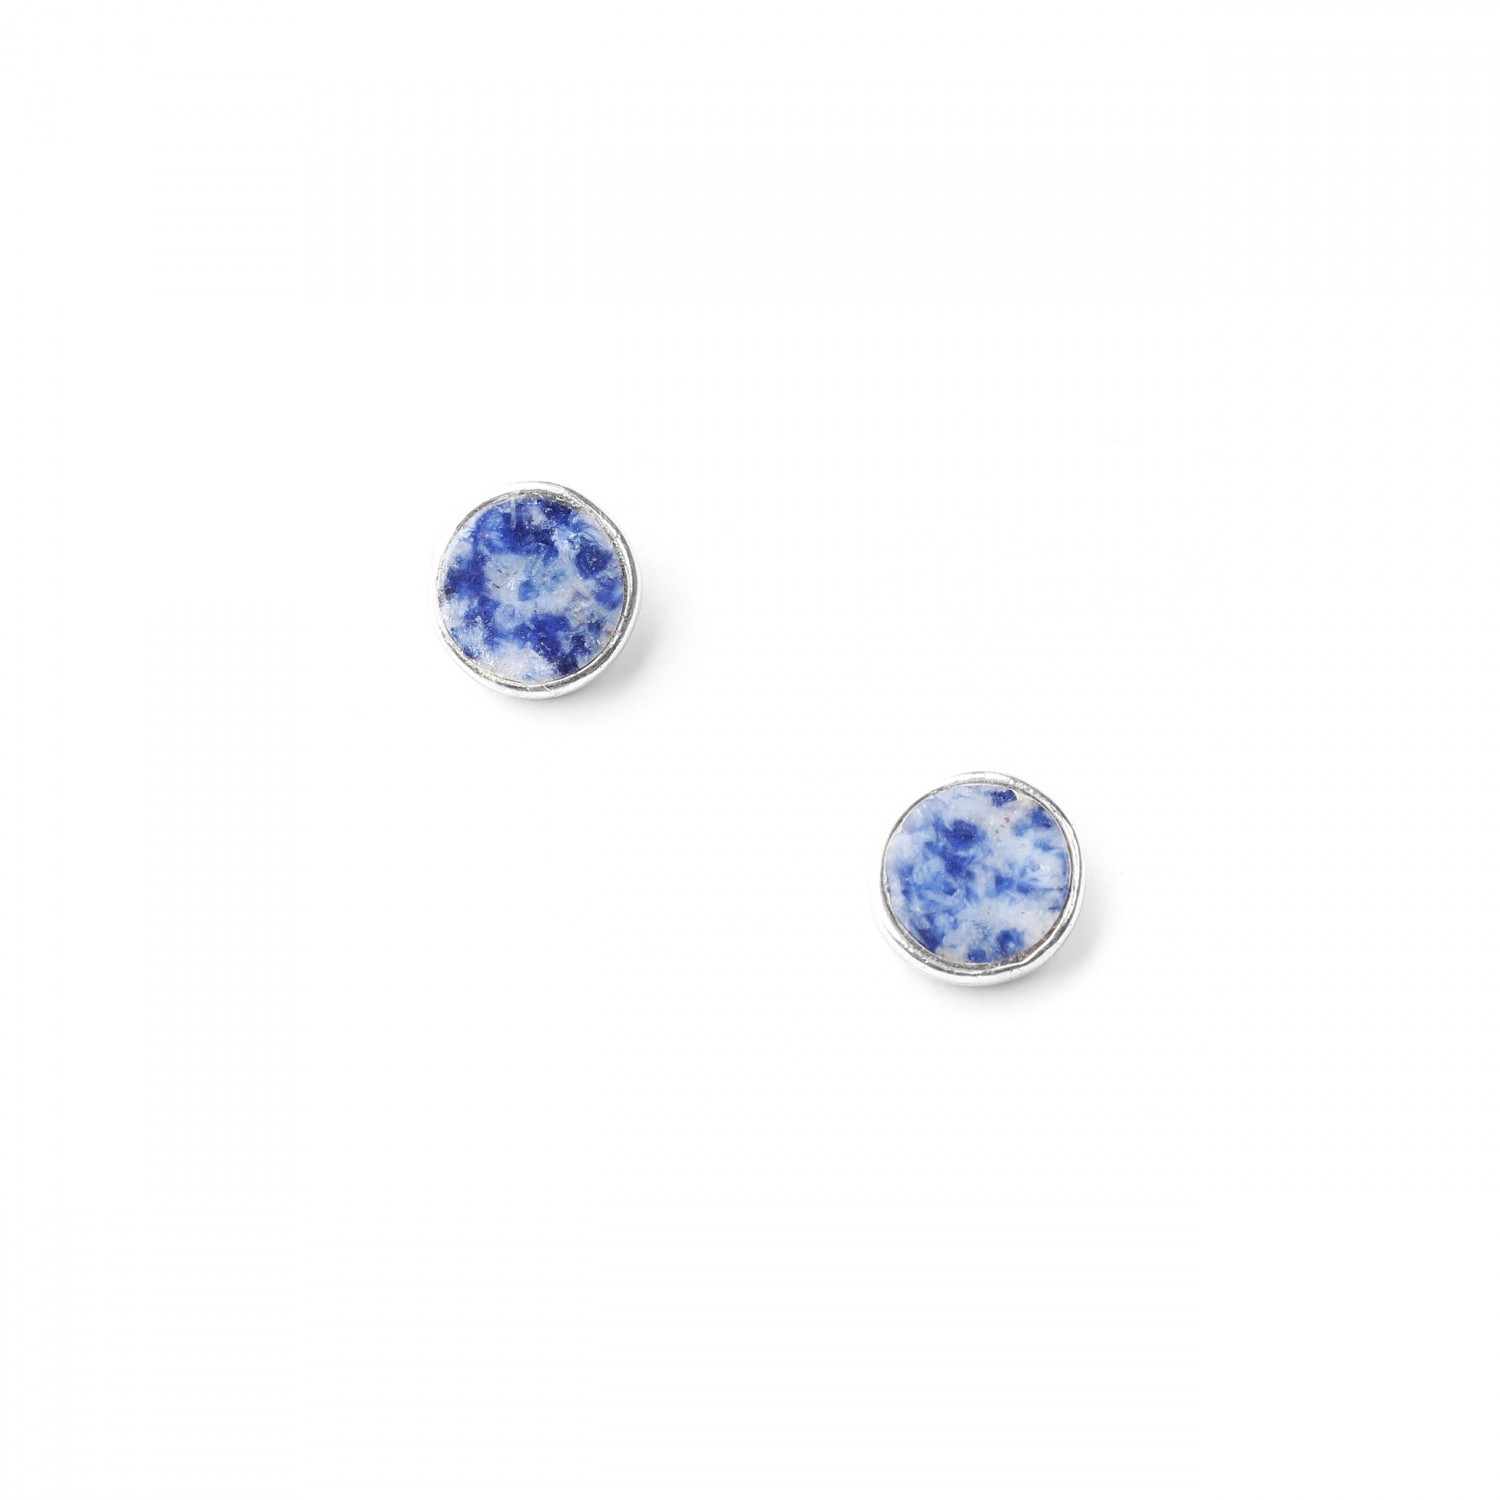 CYCLADES puces sodalite